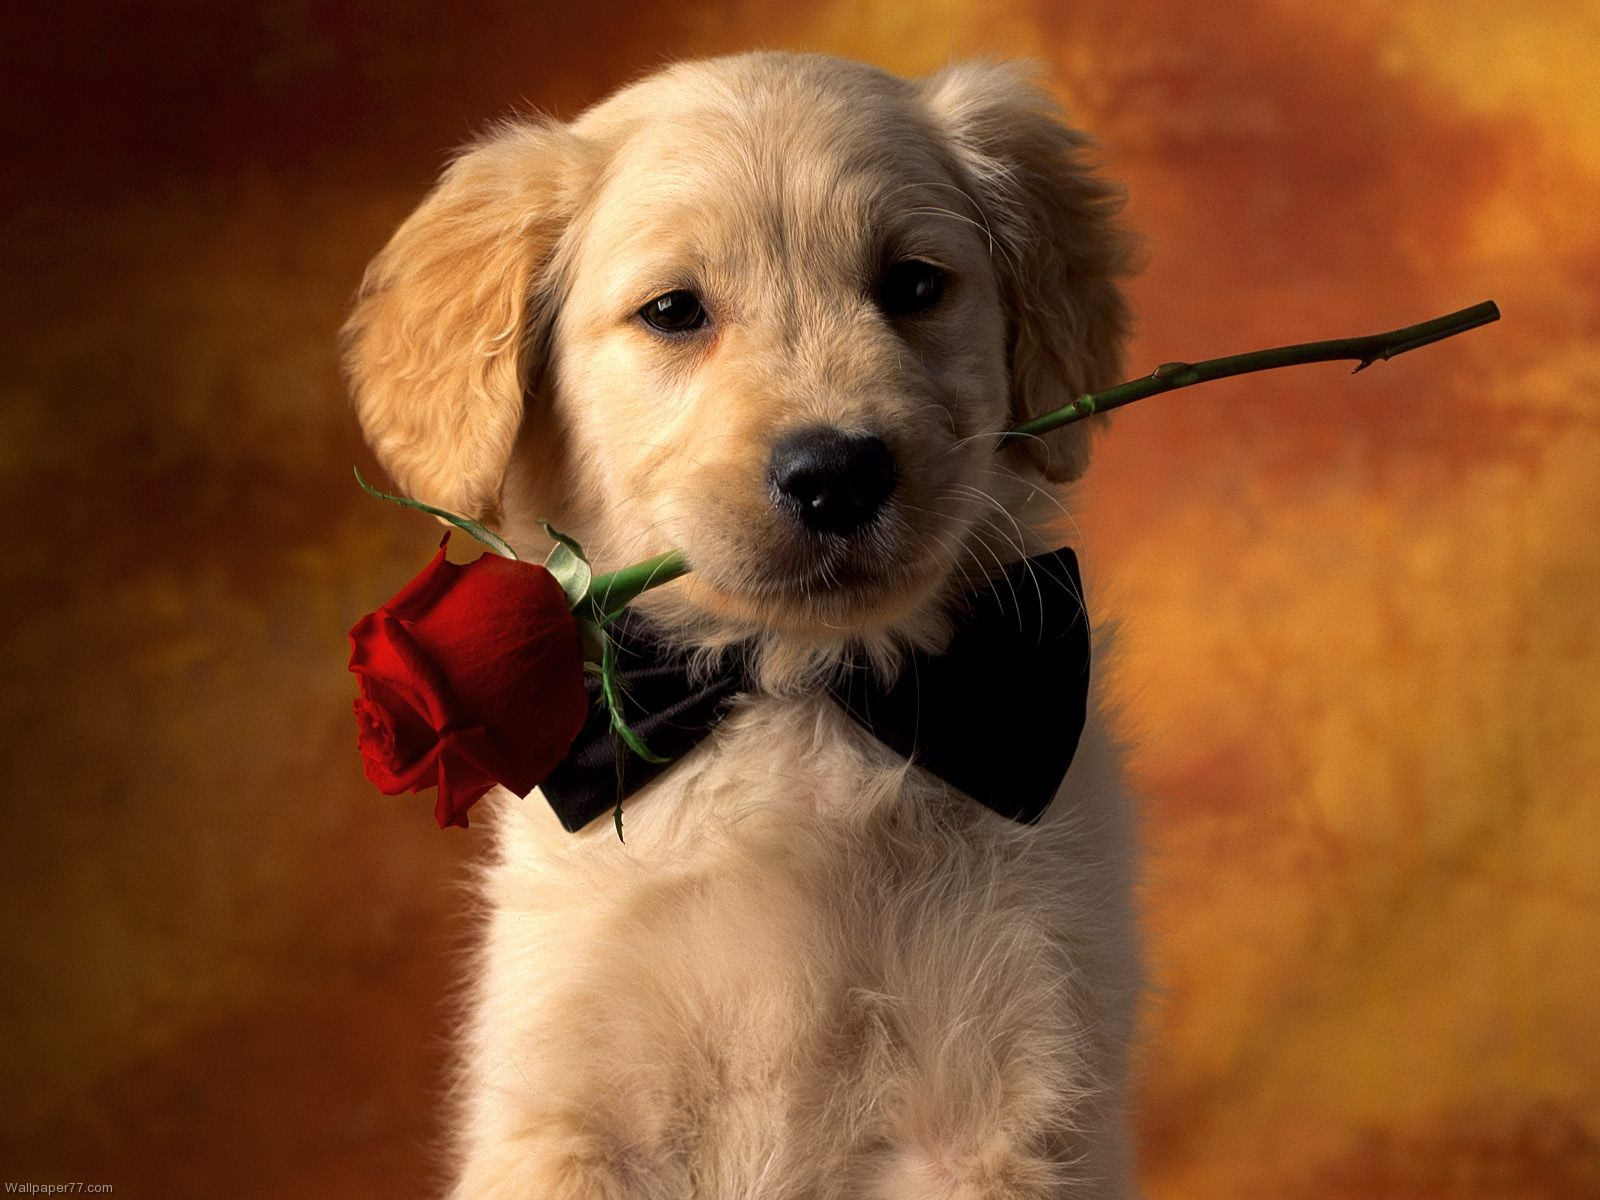 Lover, 1600×1200 Pixels : Wallpapers Tagged Baby, Dogs, Funny Animals Wallpaper